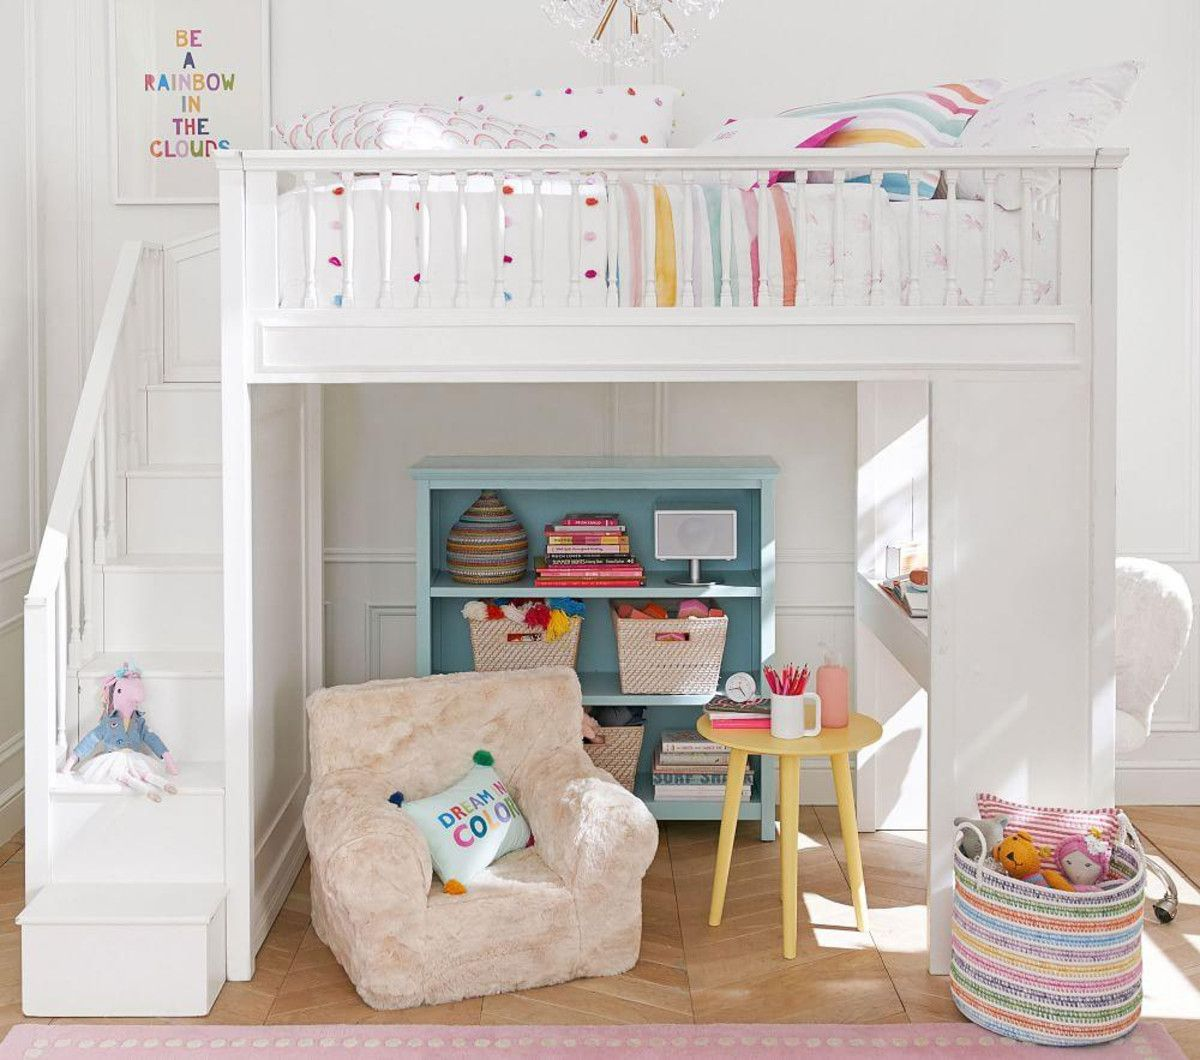 Fillmore Stair Loft in 2020 Small room bedroom, Bunk bed